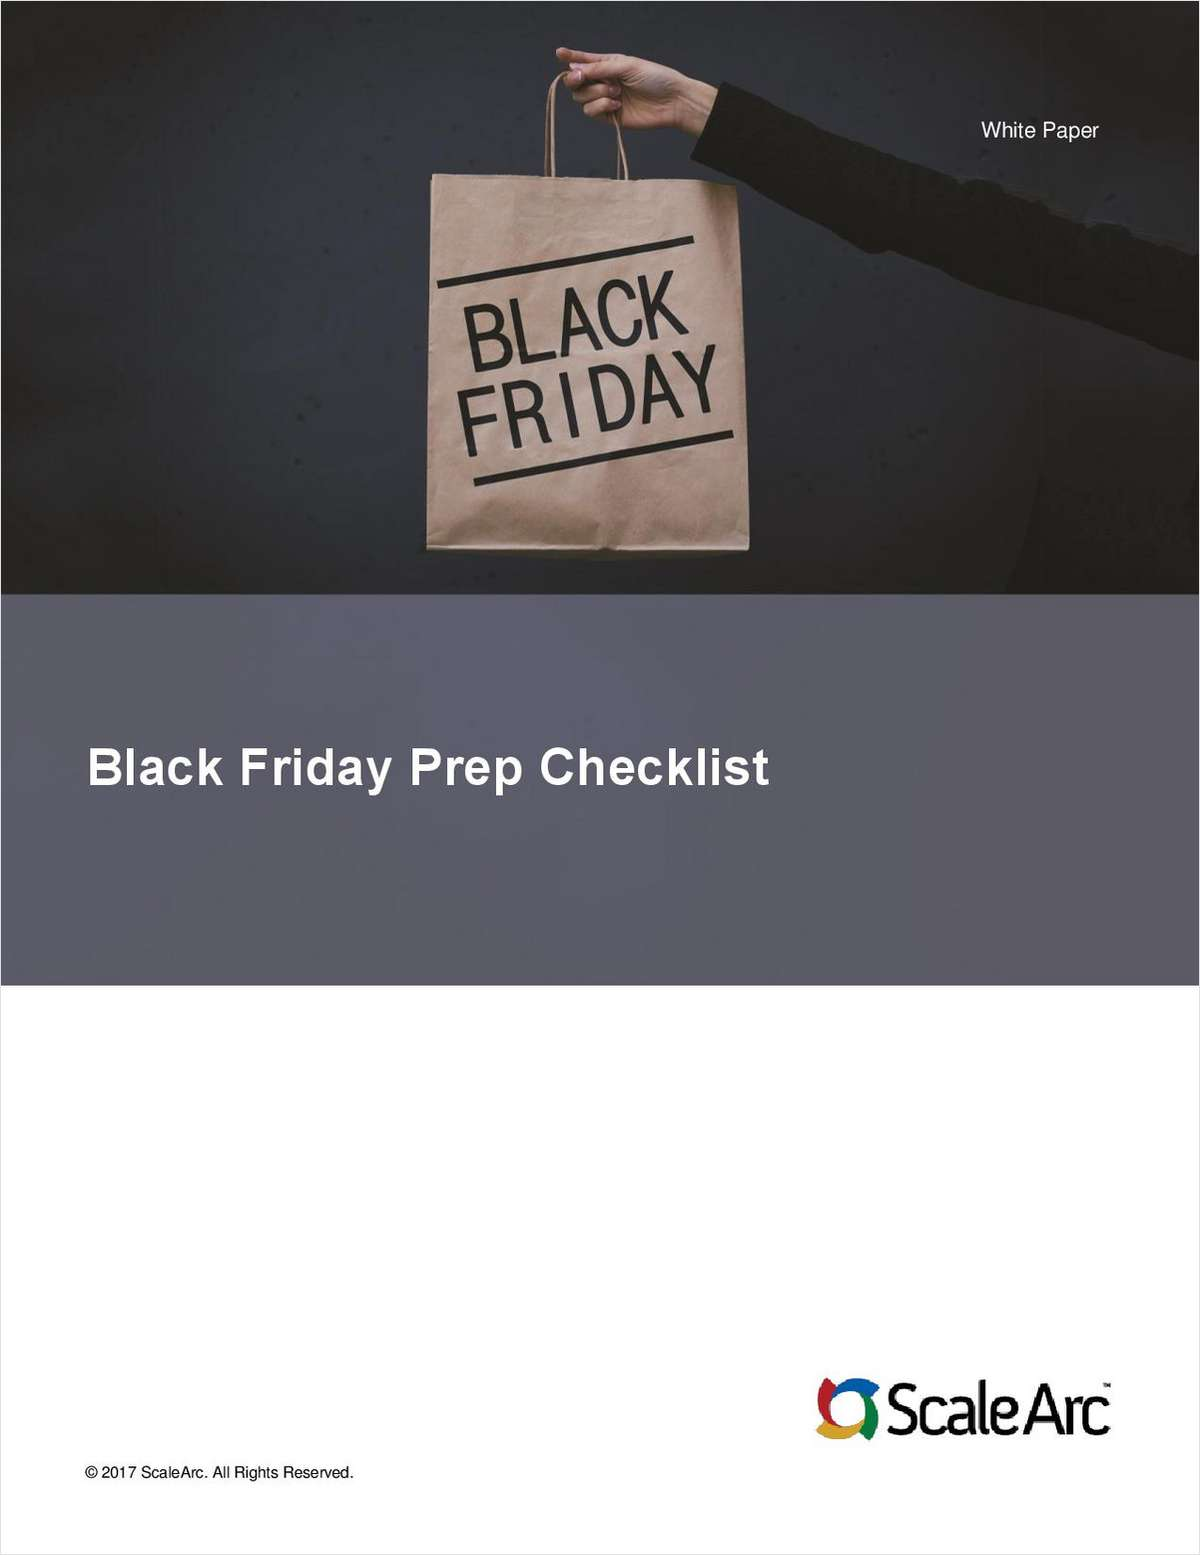 Black Friday Checklist - Preparing for the Superbowl of eCommerce